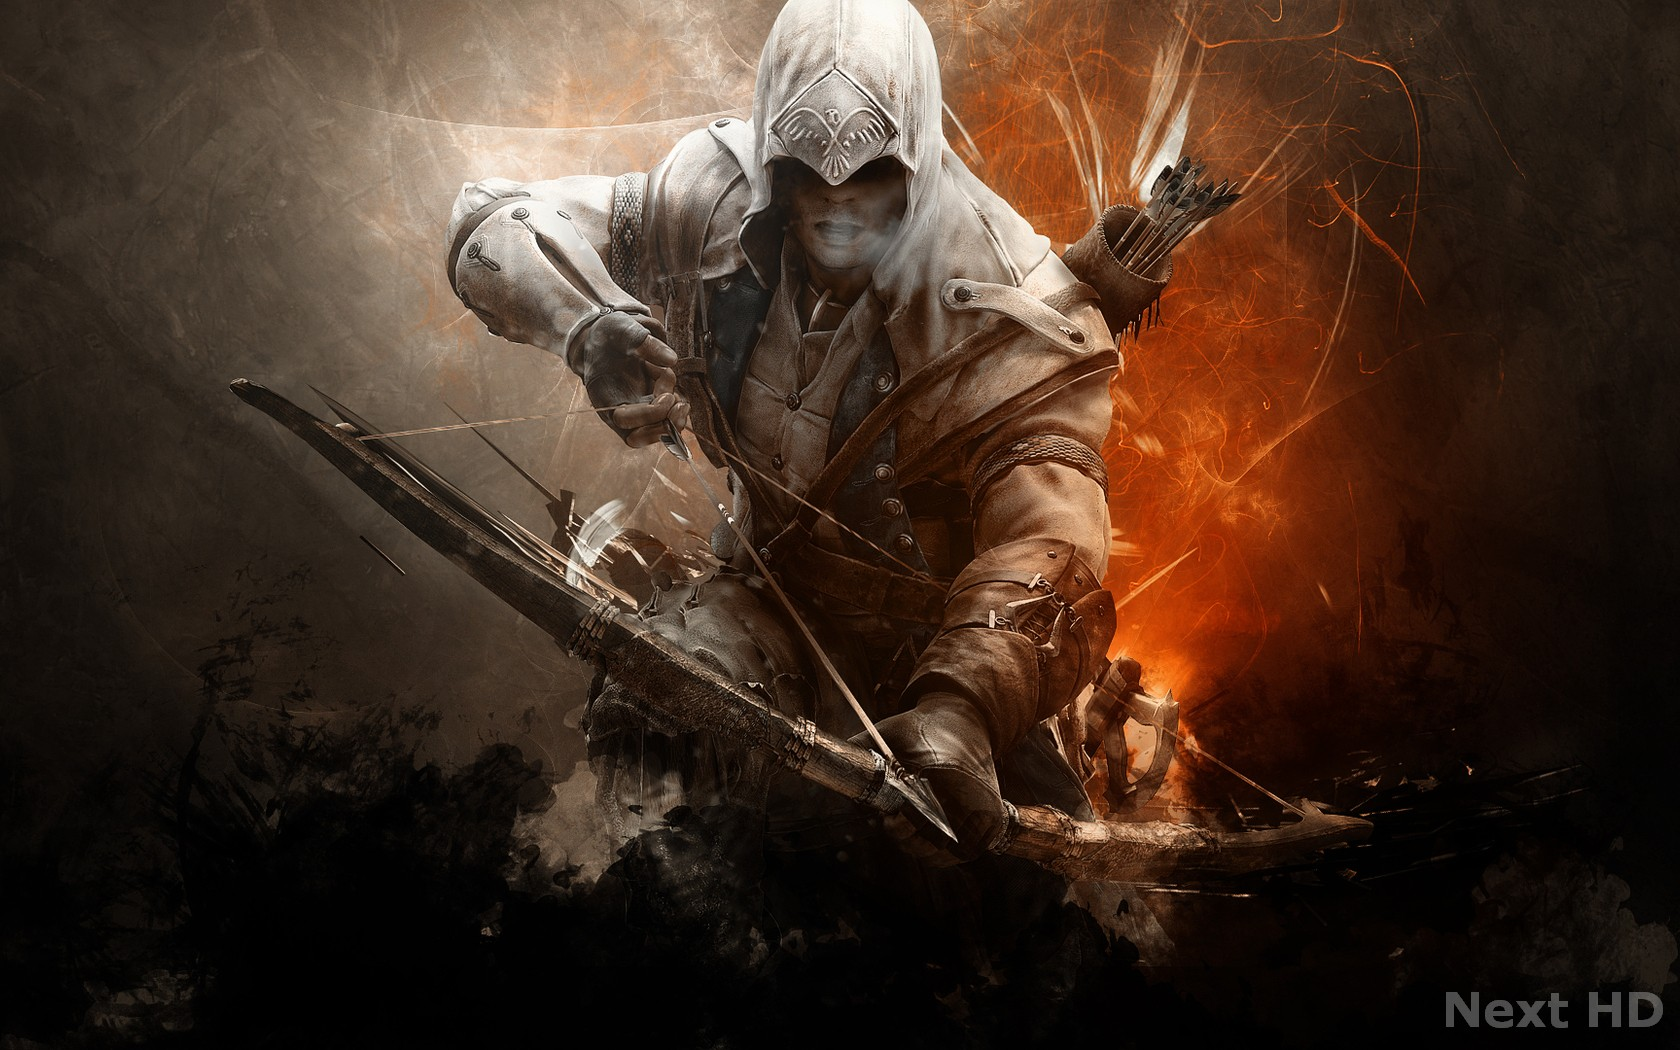 The Assassin's Assassin's Creed 3